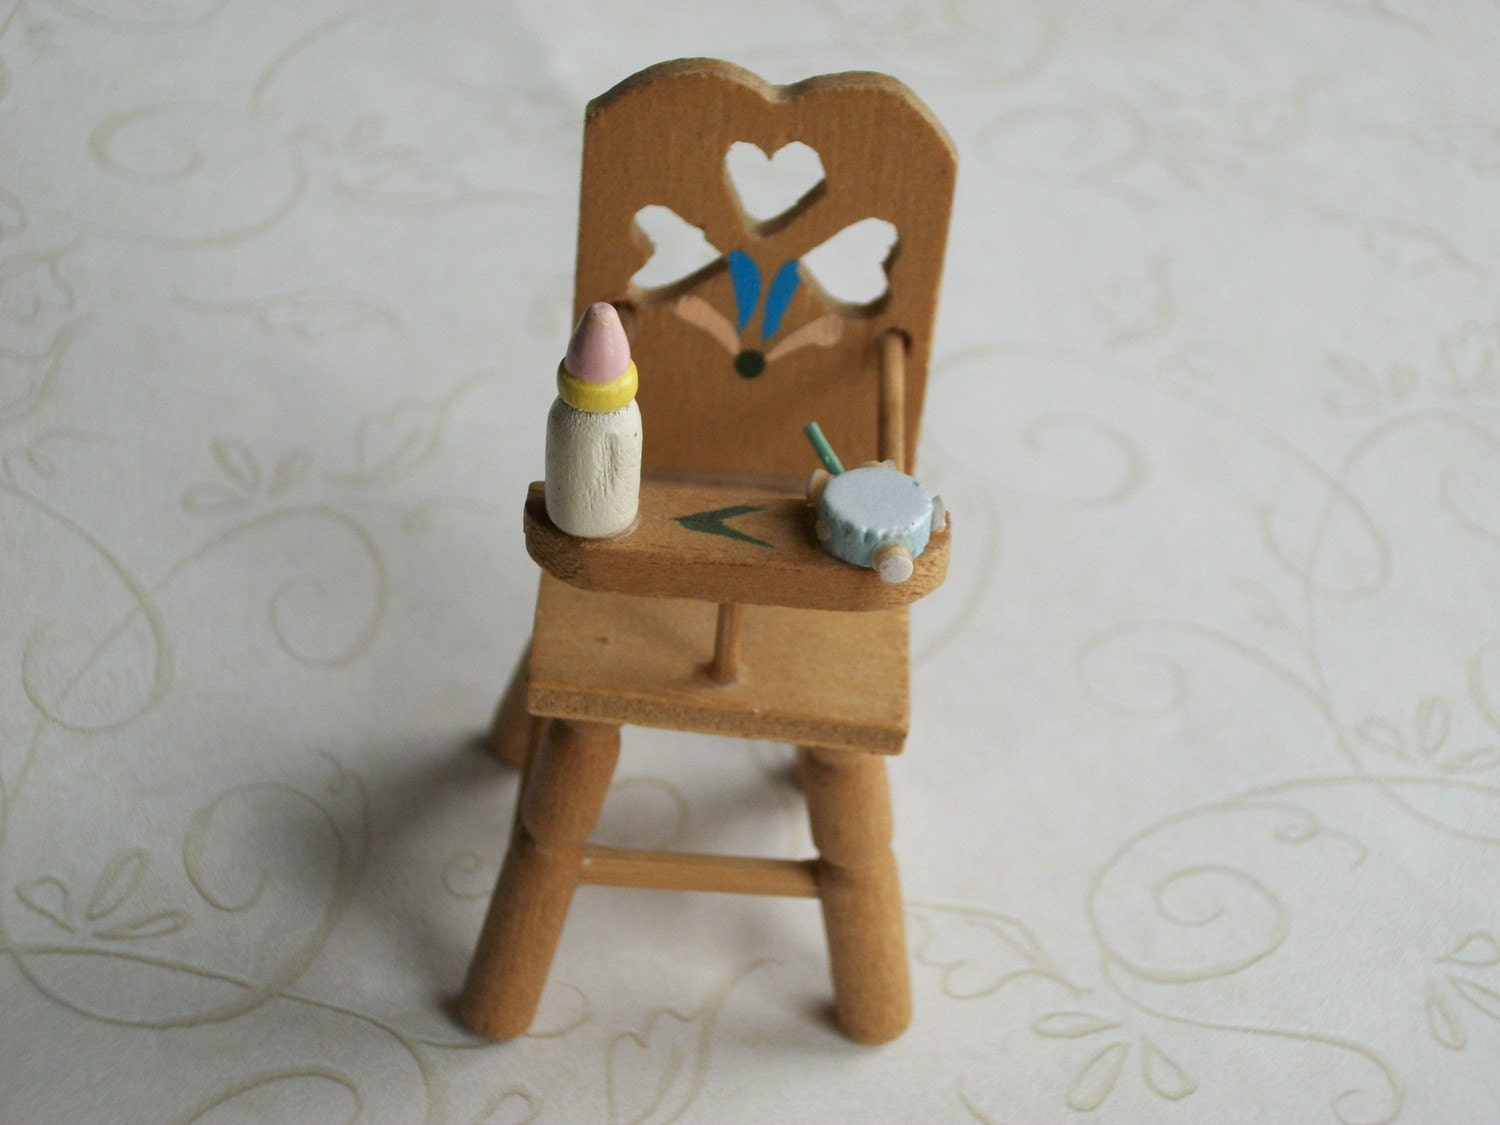 Vintage 1980 39 S Miniature Wooden Baby High Chair